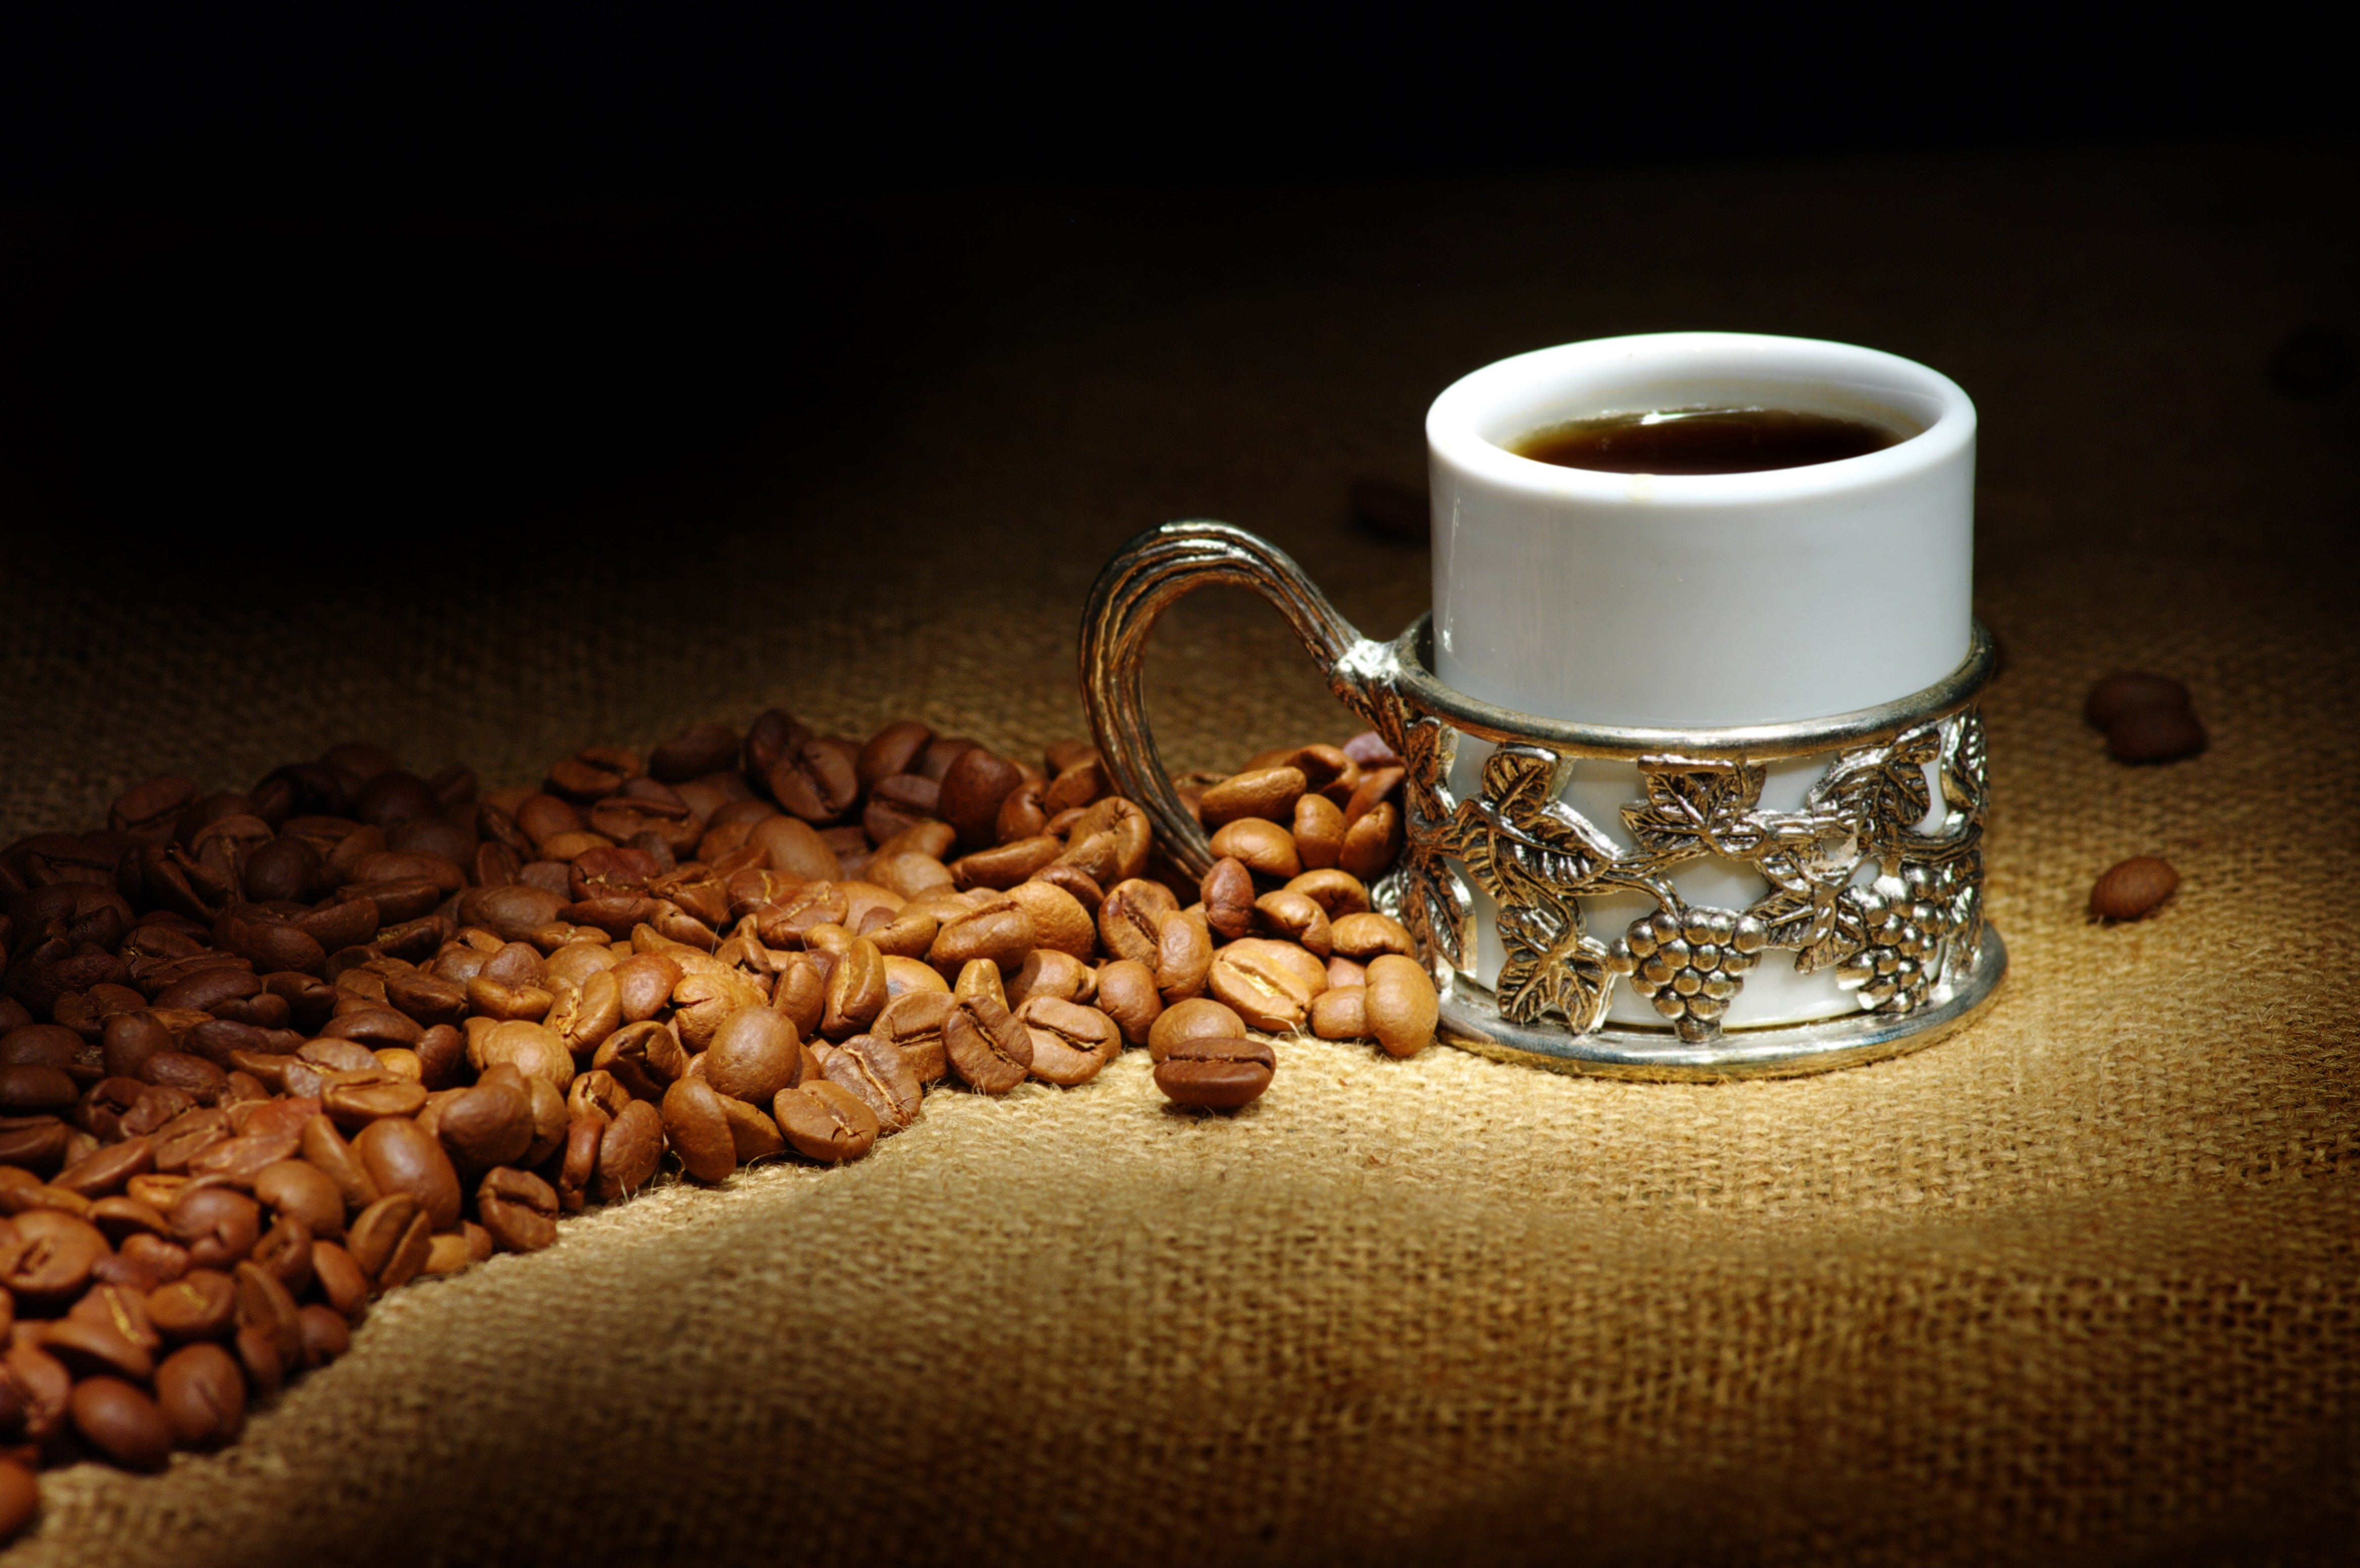 coffee 4k wallpaper (4672x3104) wallpapers and